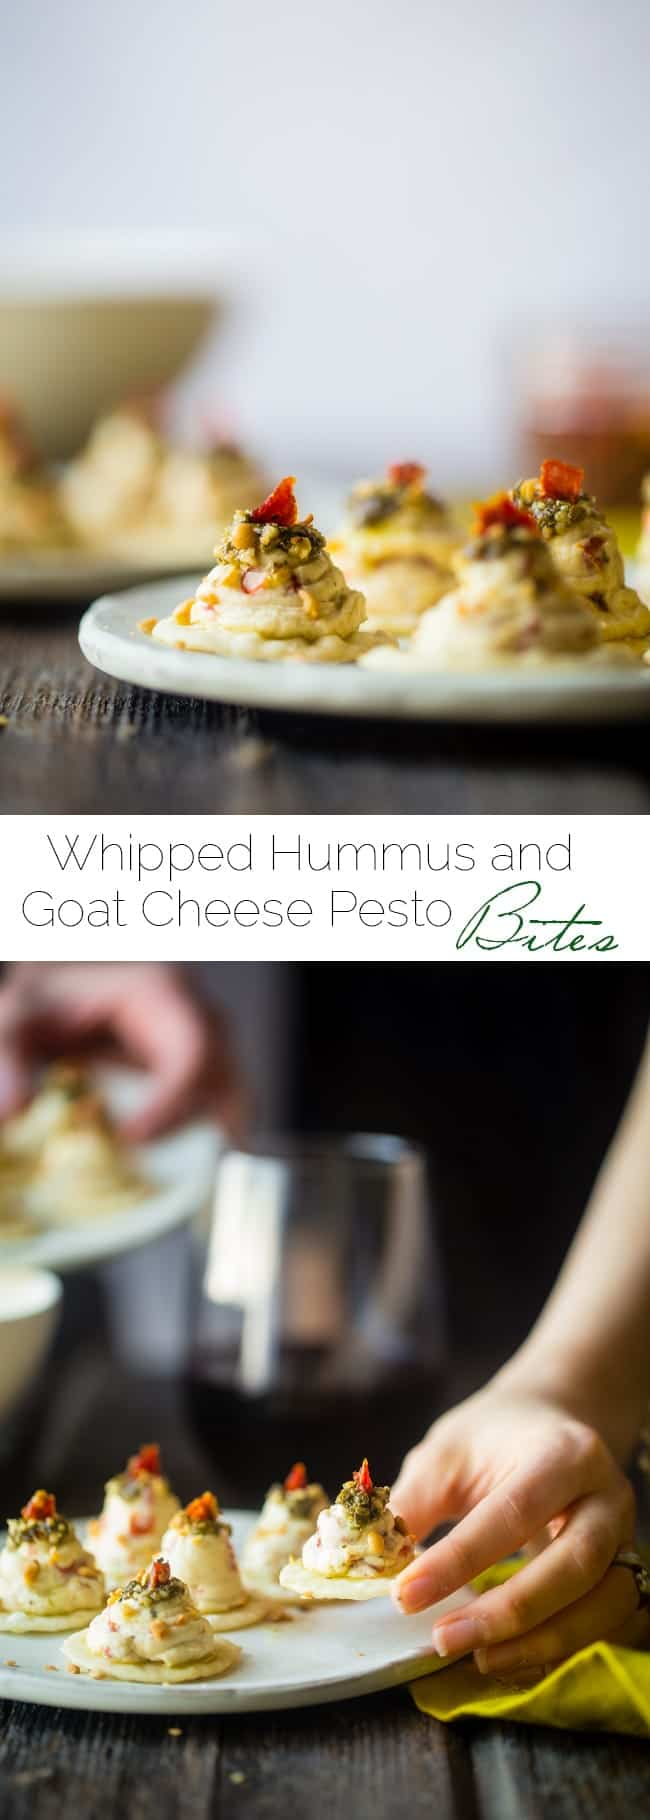 Sun-Dried Tomato Hummus and Goat Cheese Pesto Bites - These quick and easy bites use creamy goat cheese and tangy hummus! They're a healthy, spring appetizer that are only 40 calories and 1 SmartPoint! | Foodfaithfitness.com | @FoodFaithFit